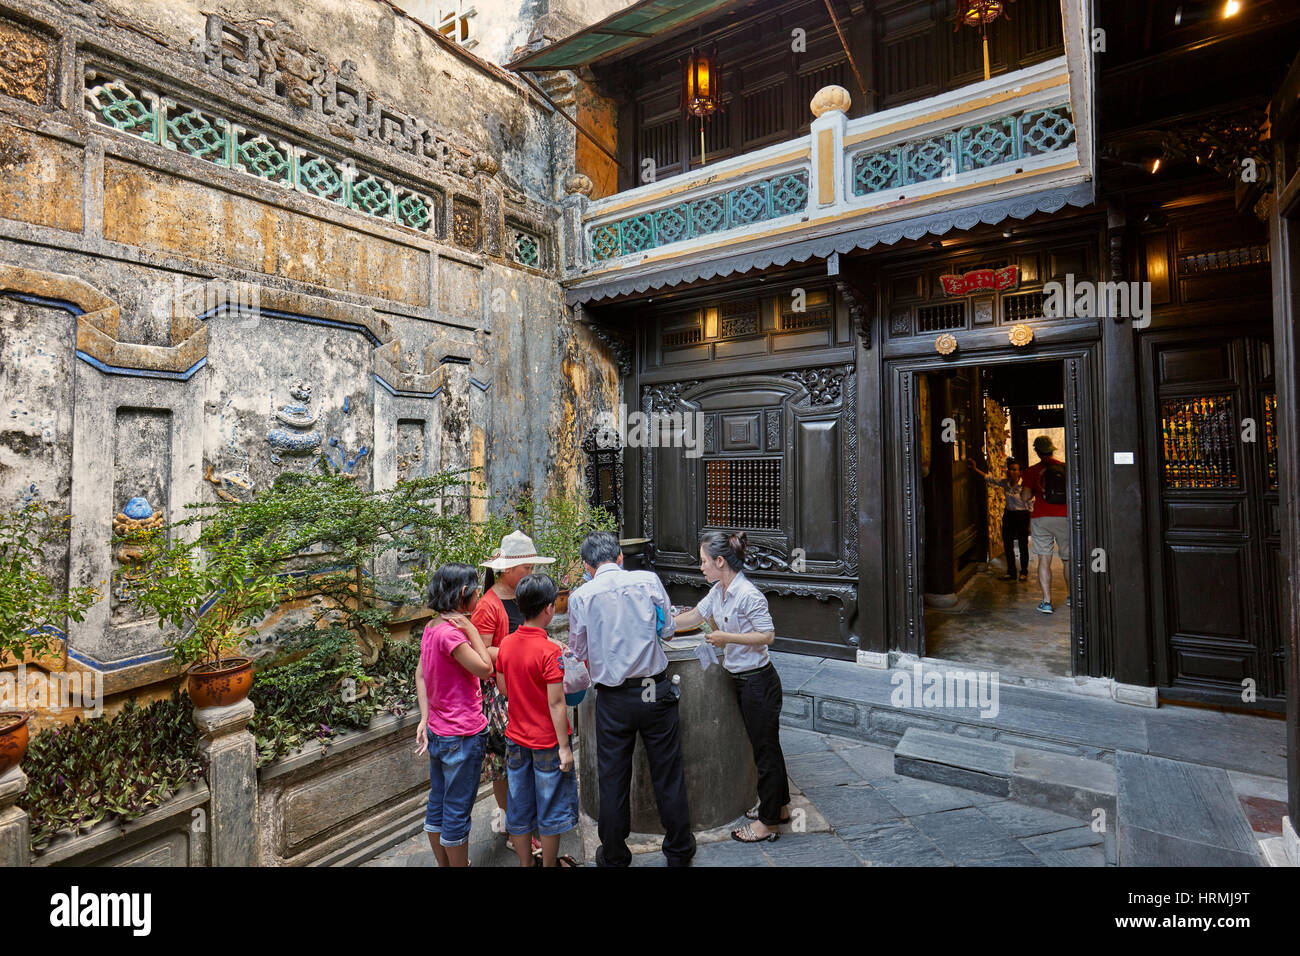 Tourists with local guides in the open courtyard of the Old House of Tan Ky. Hoi An Ancient Town, Quang Nam Province, Stock Photo